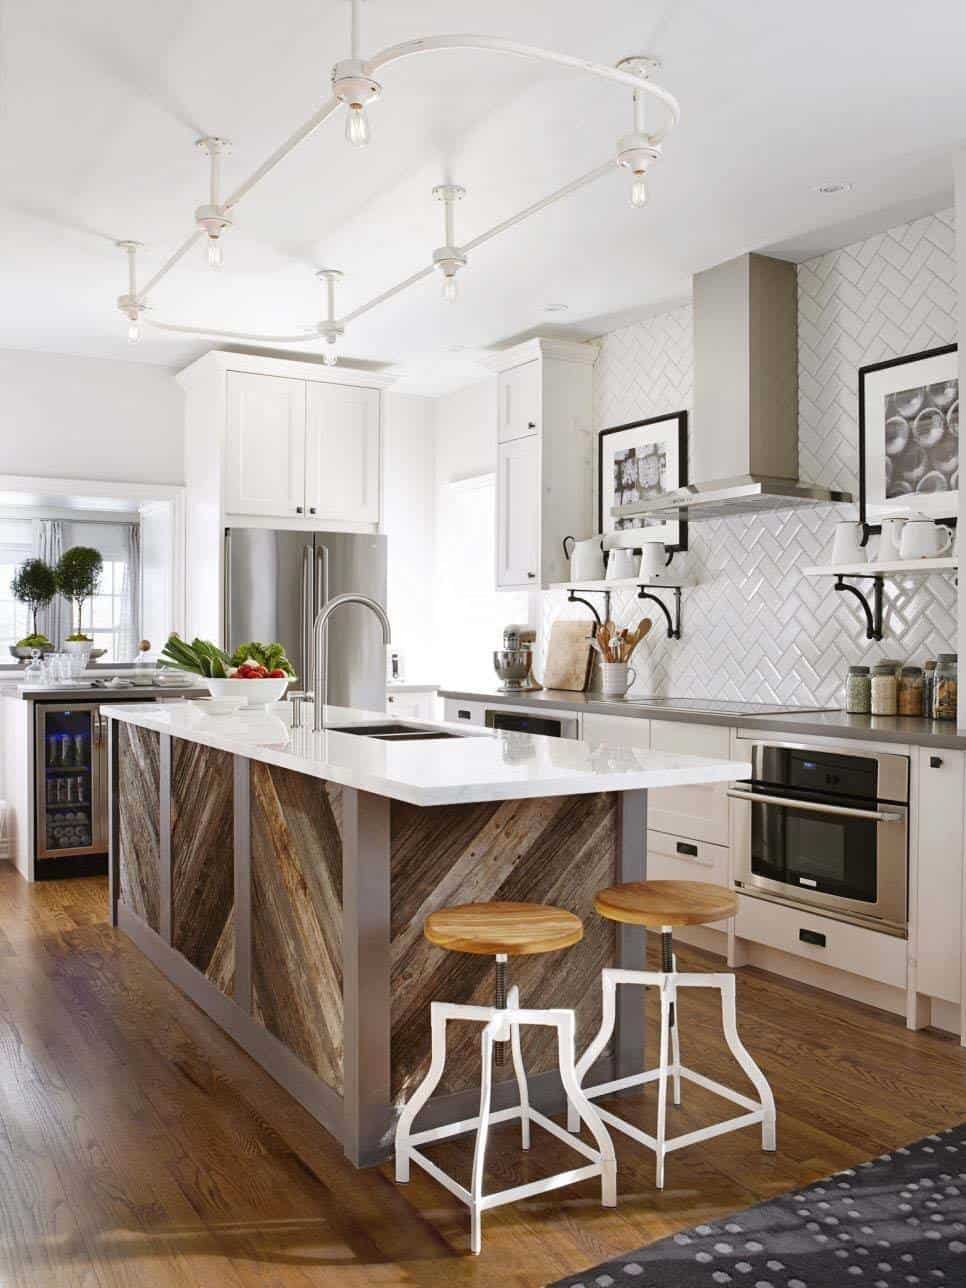 Kitchen Island Ideas That Make A Statement